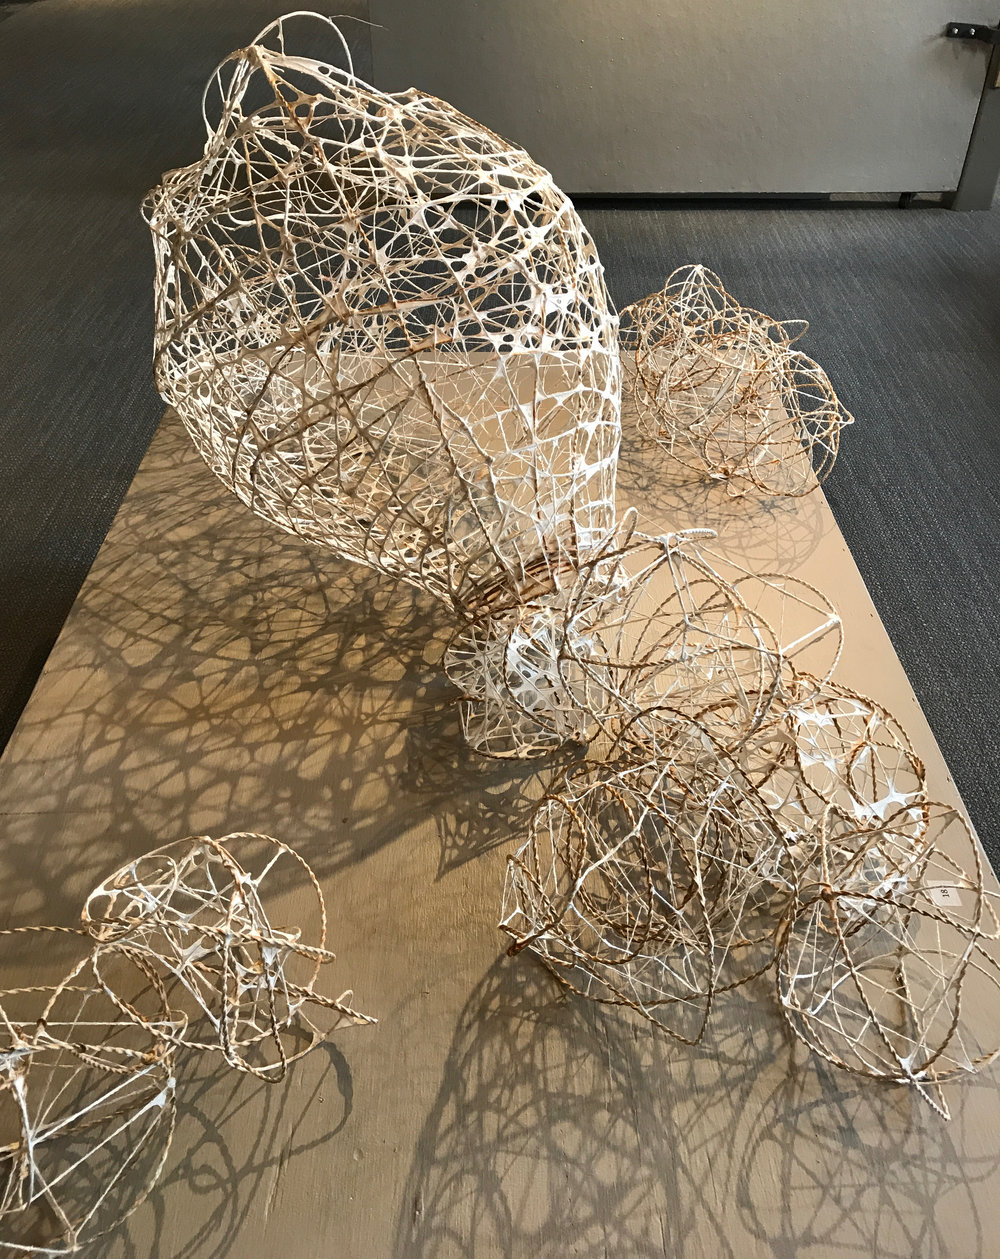 Untitled Rebar Tie Wire Sculptures